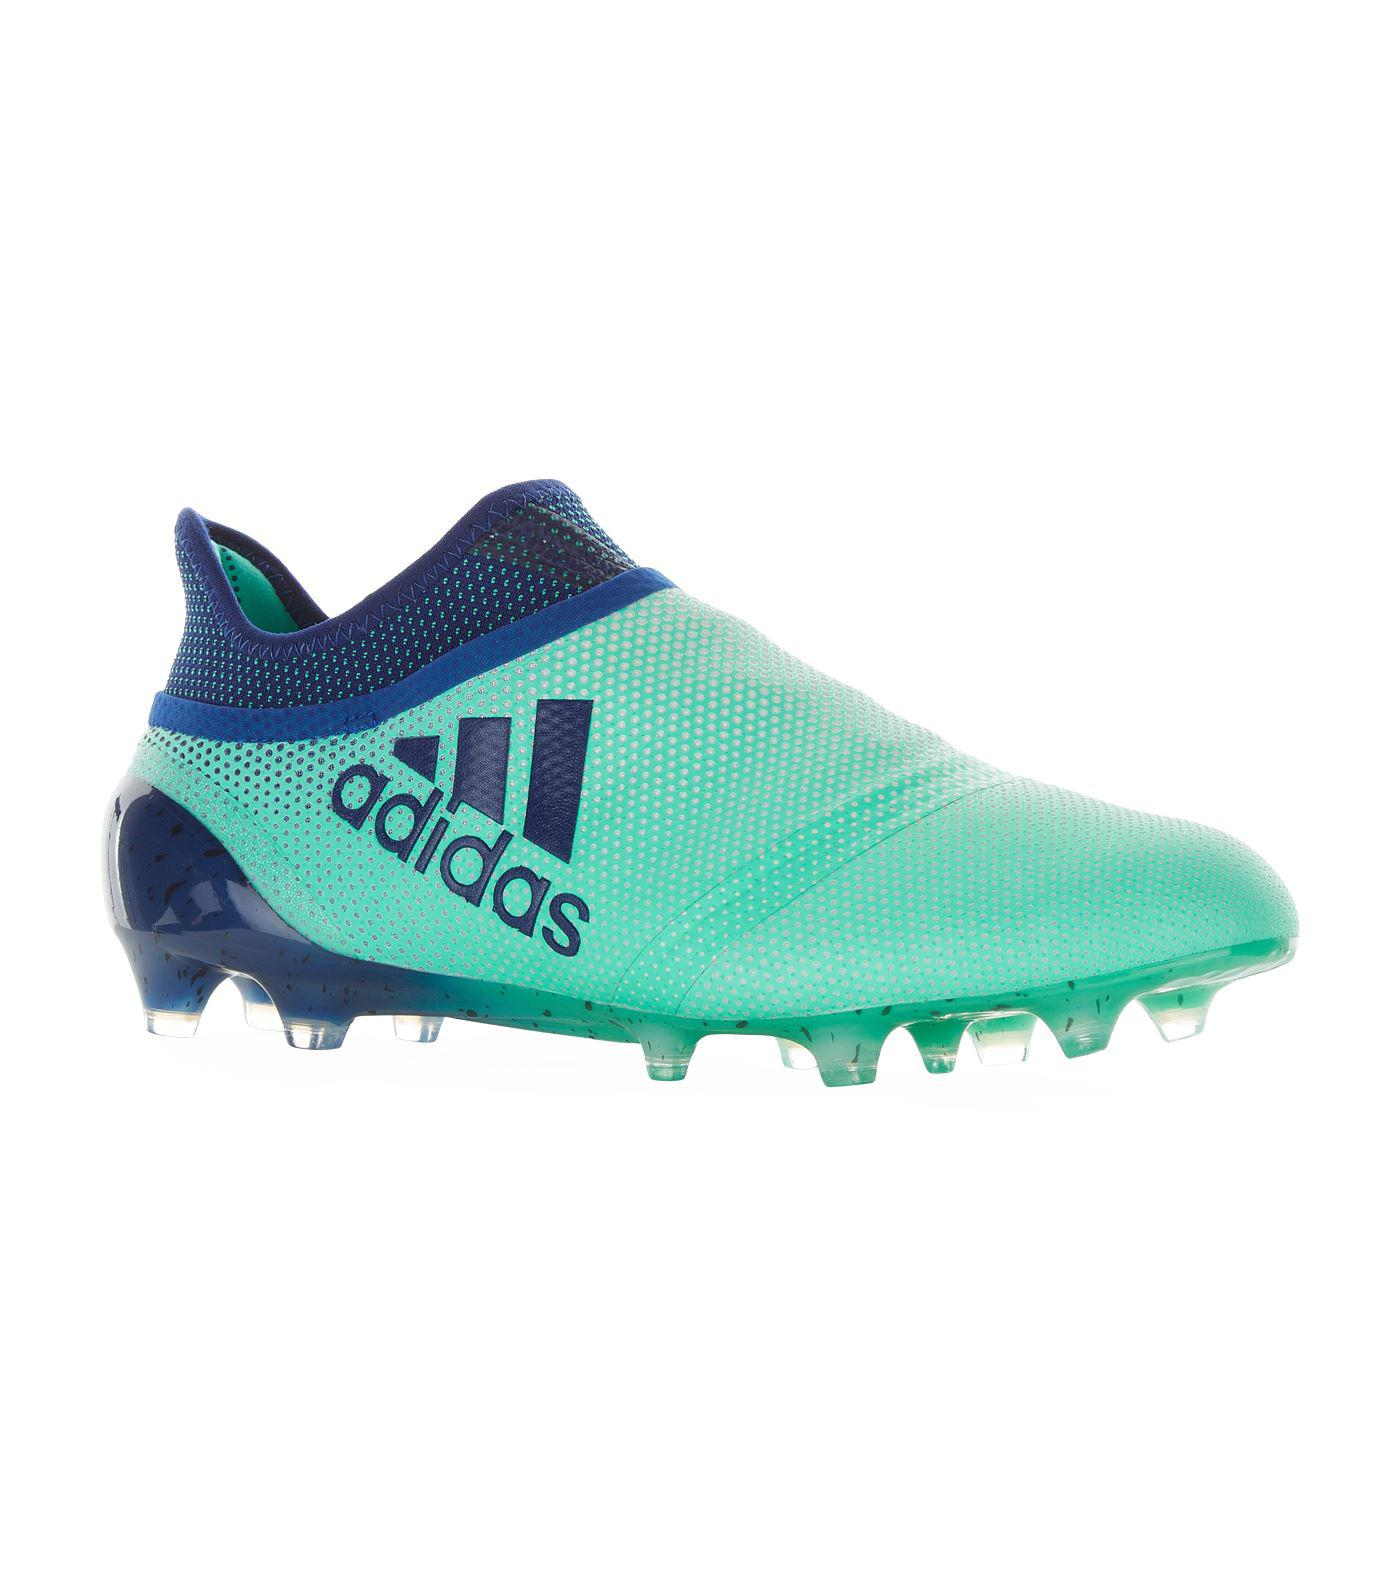 wholesale dealer 56380 89e9d Adidas X 17+ Purespeed Firm Ground Football Boots in Green f